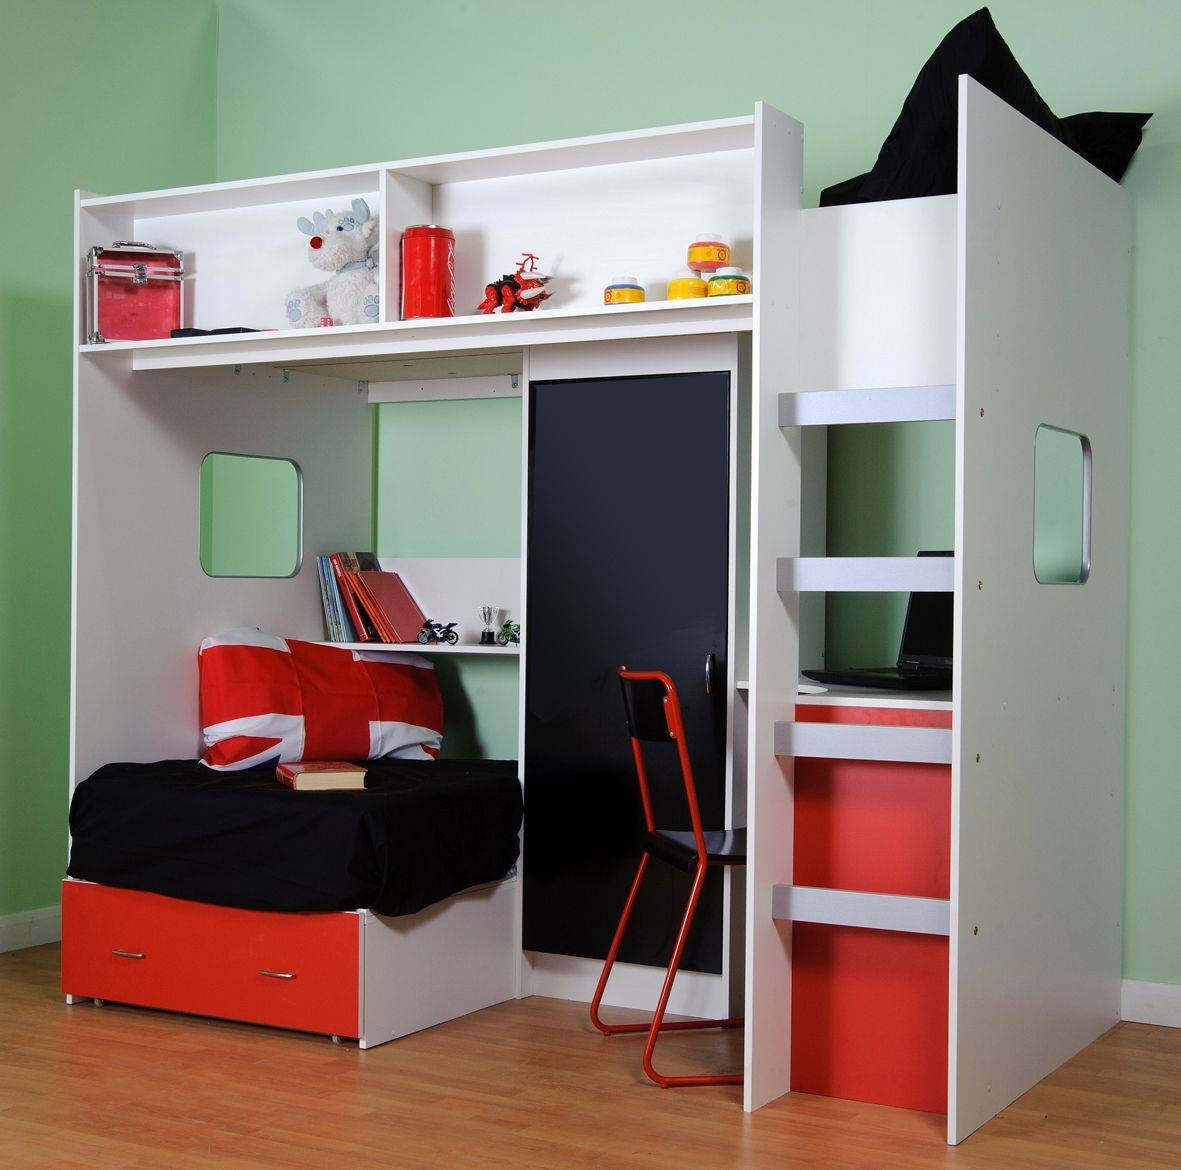 Loft Beds : Bunk Bed With Wardrobe Underneath 117 Kids Furniture throughout Childrens Bed With Wardrobes Underneath (Image 14 of 15)